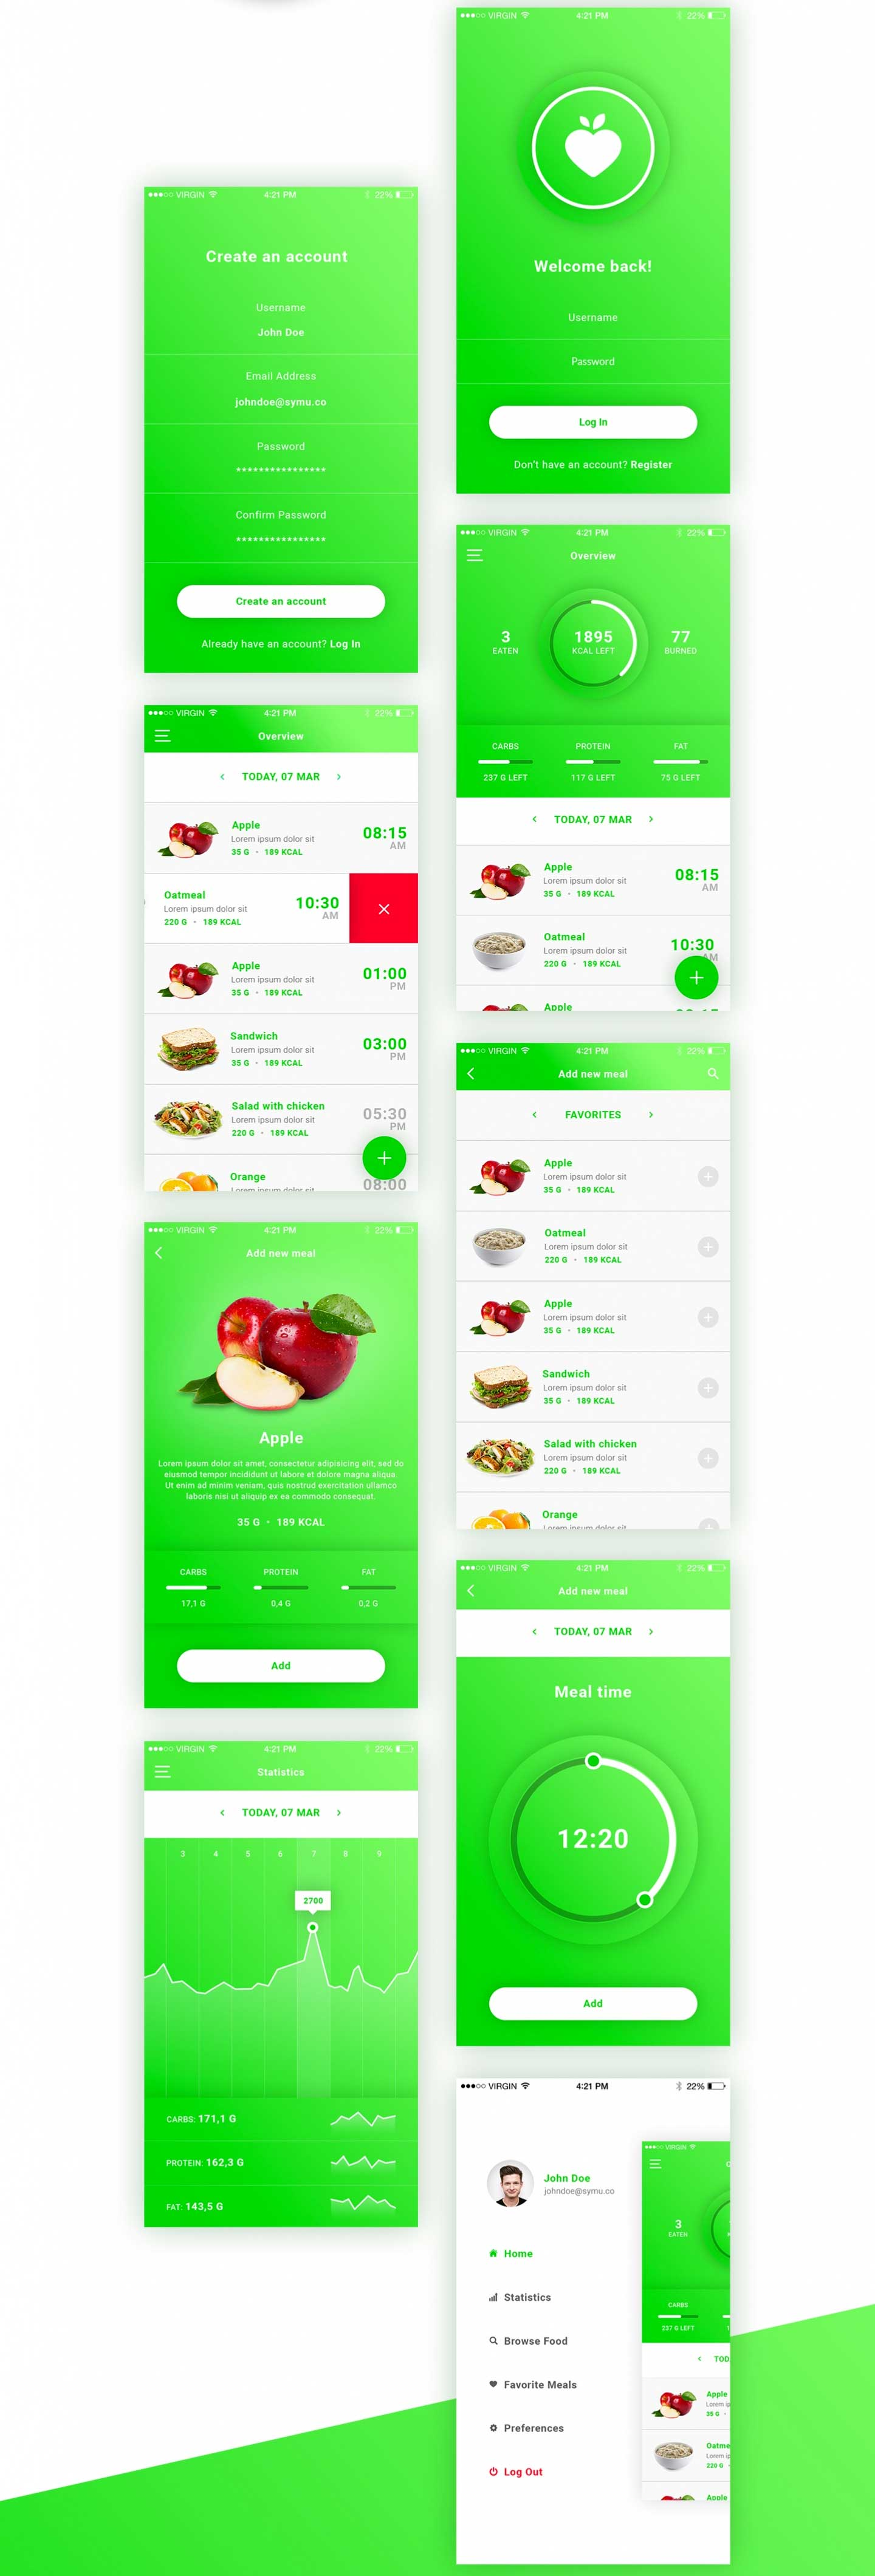 FitApp-Mobile-App-PSD-Template-Preview